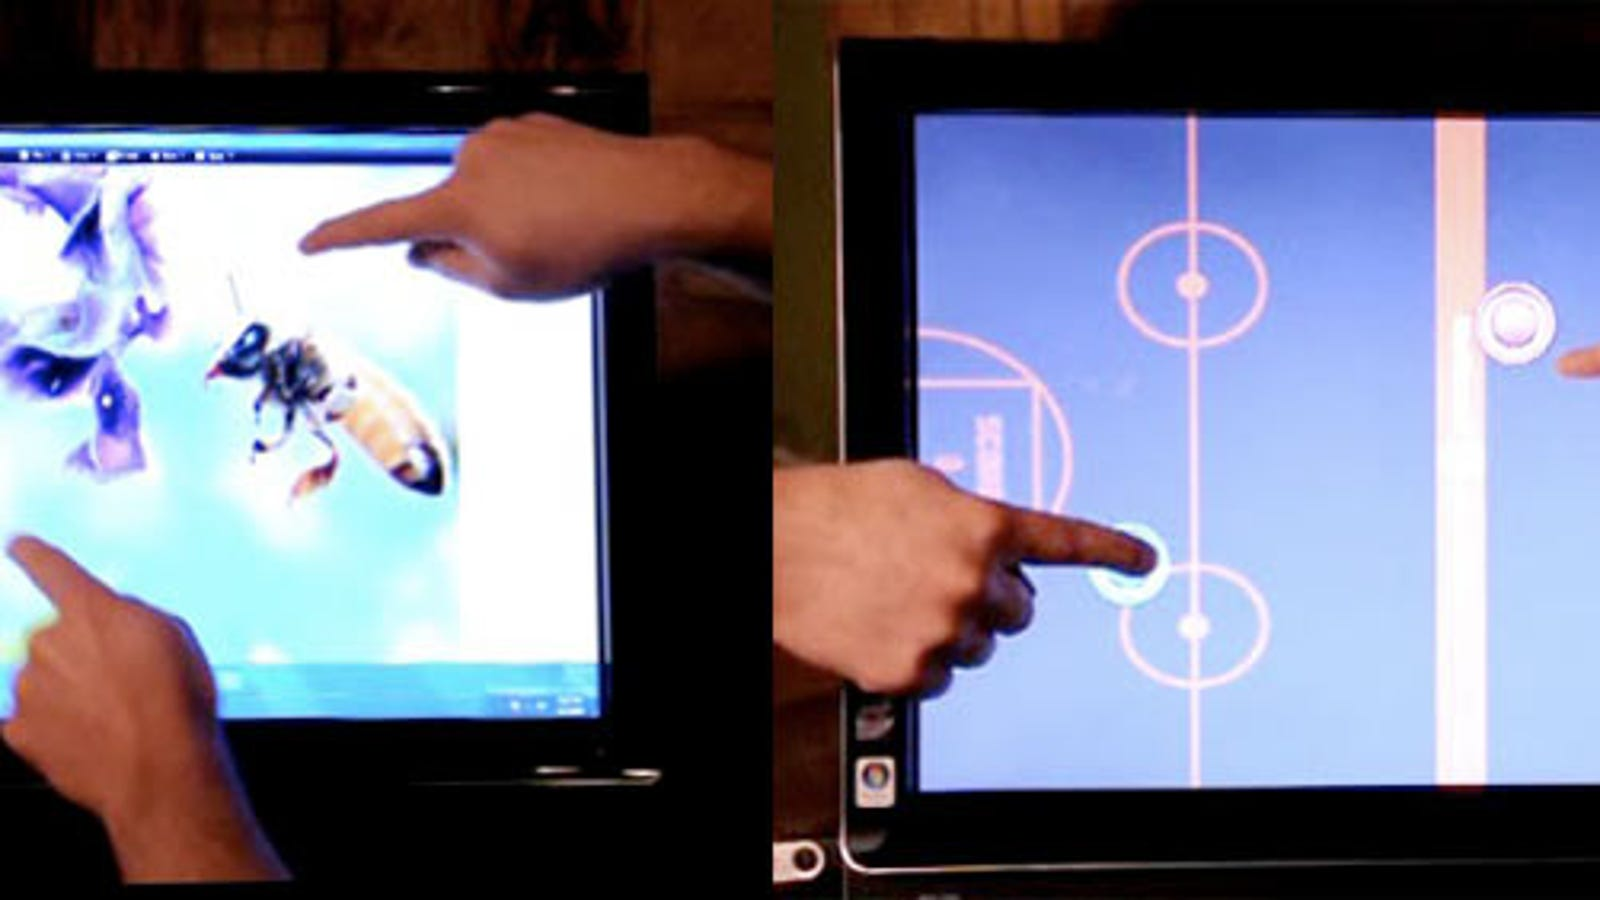 Windows 7 Touch and Multitouch Gesturing, Pen Controls and